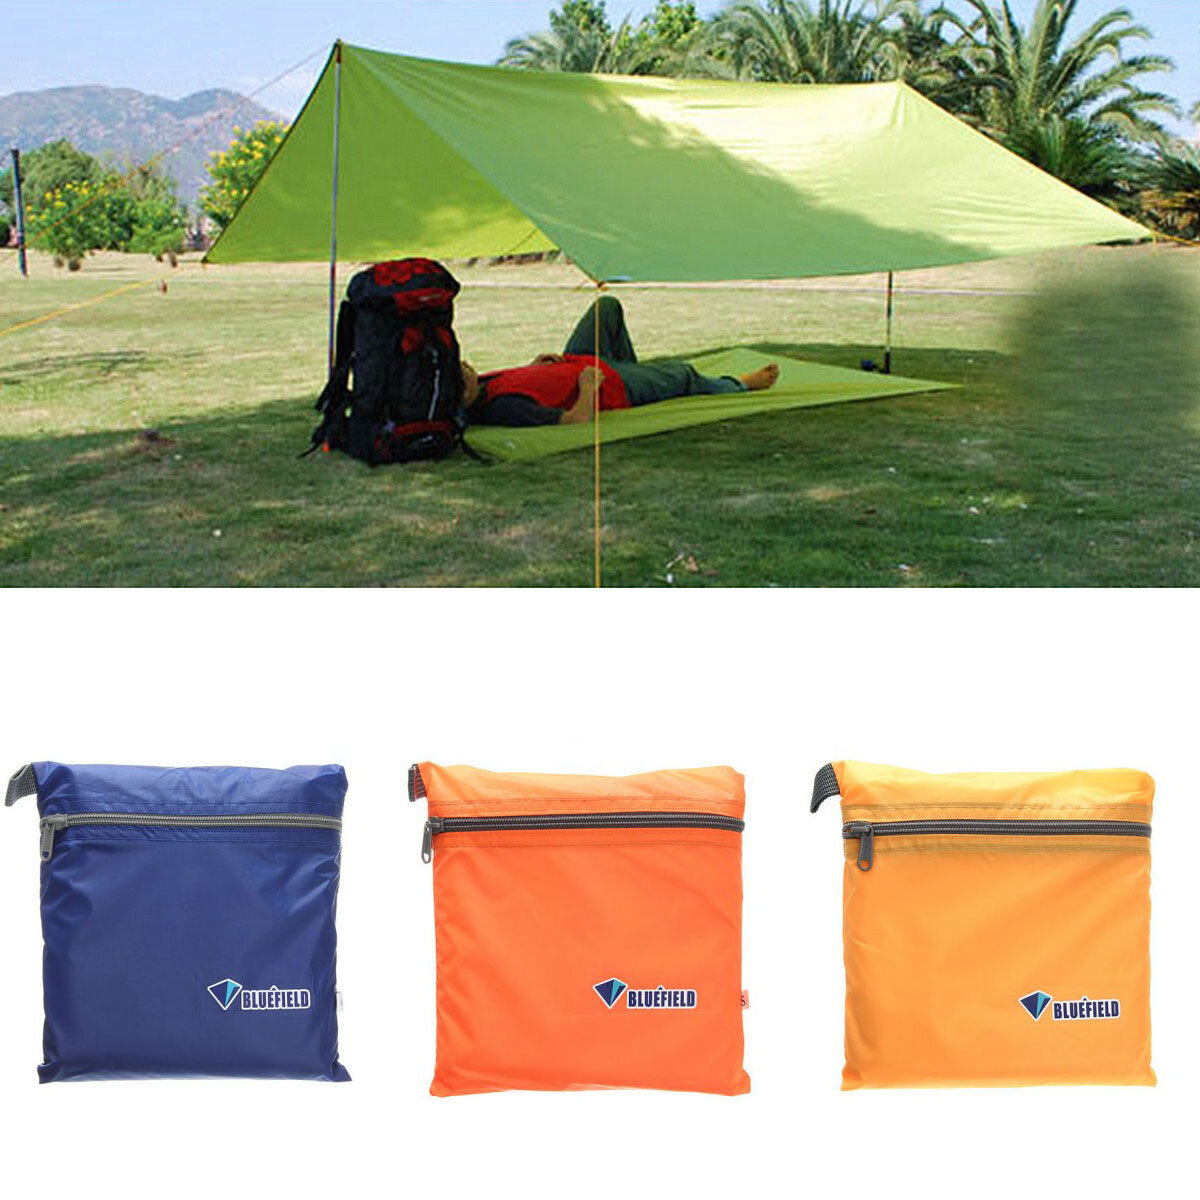 IPRee™ 250x150CM Portable Camping Tent Sunshade Outdoor Waterproof Shelter Canopy Tentage